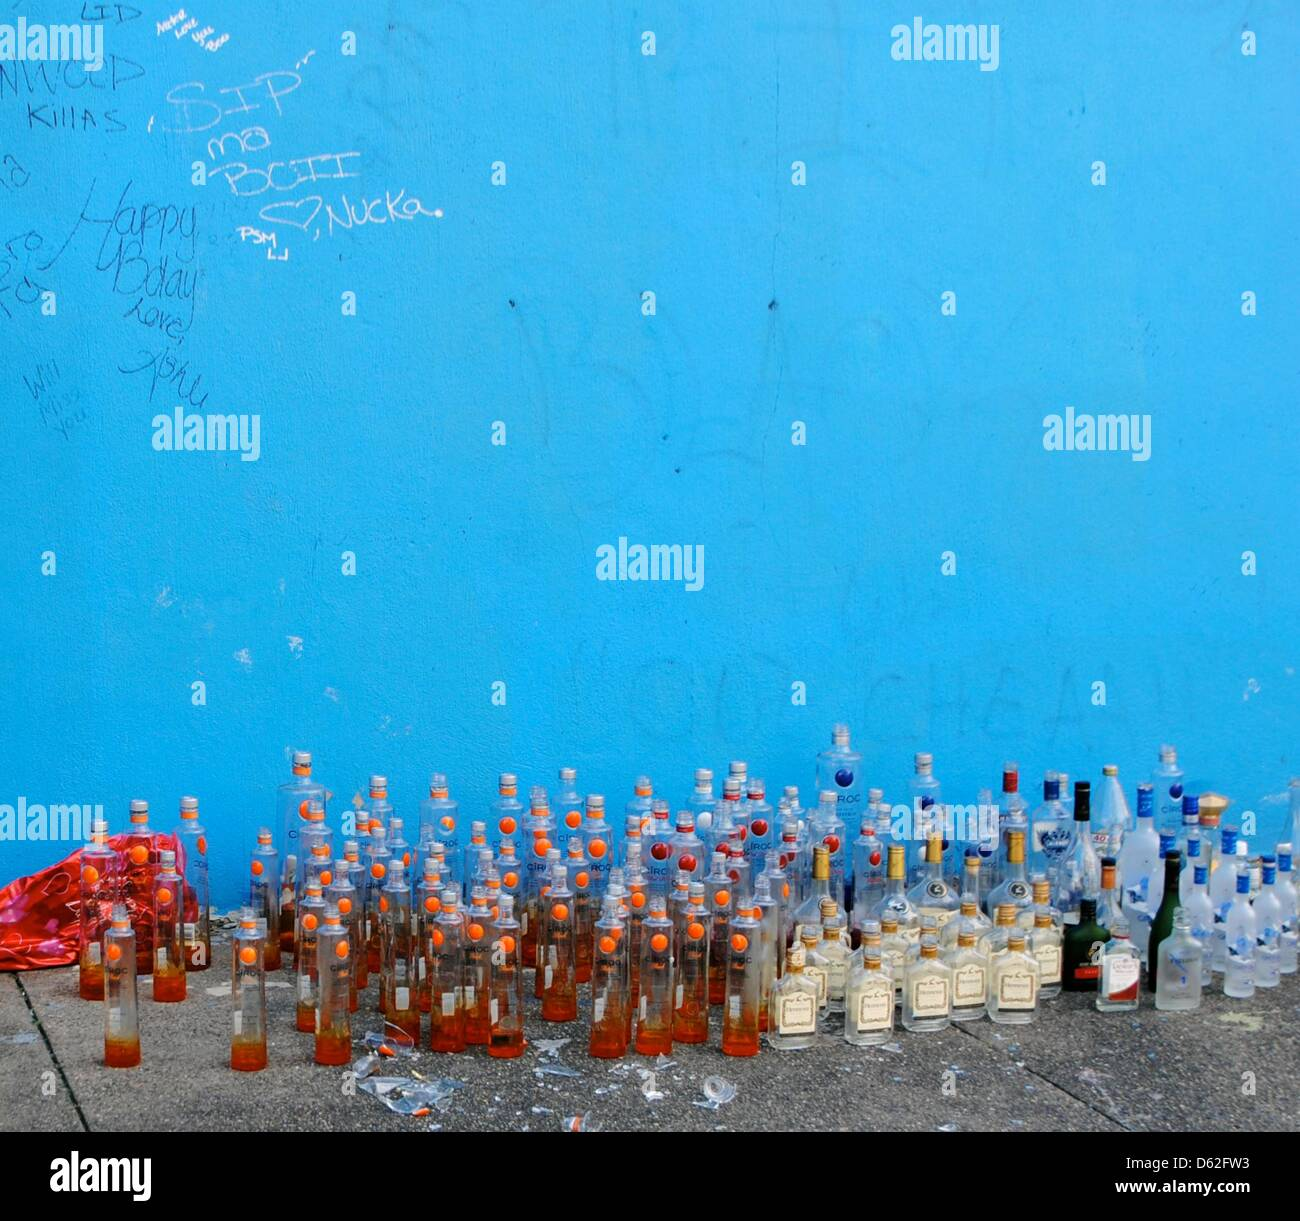 Gang members commemorate a deceased friend with bottles of schnapps instead of flowers in Camden, USA, 12 March - Stock Image